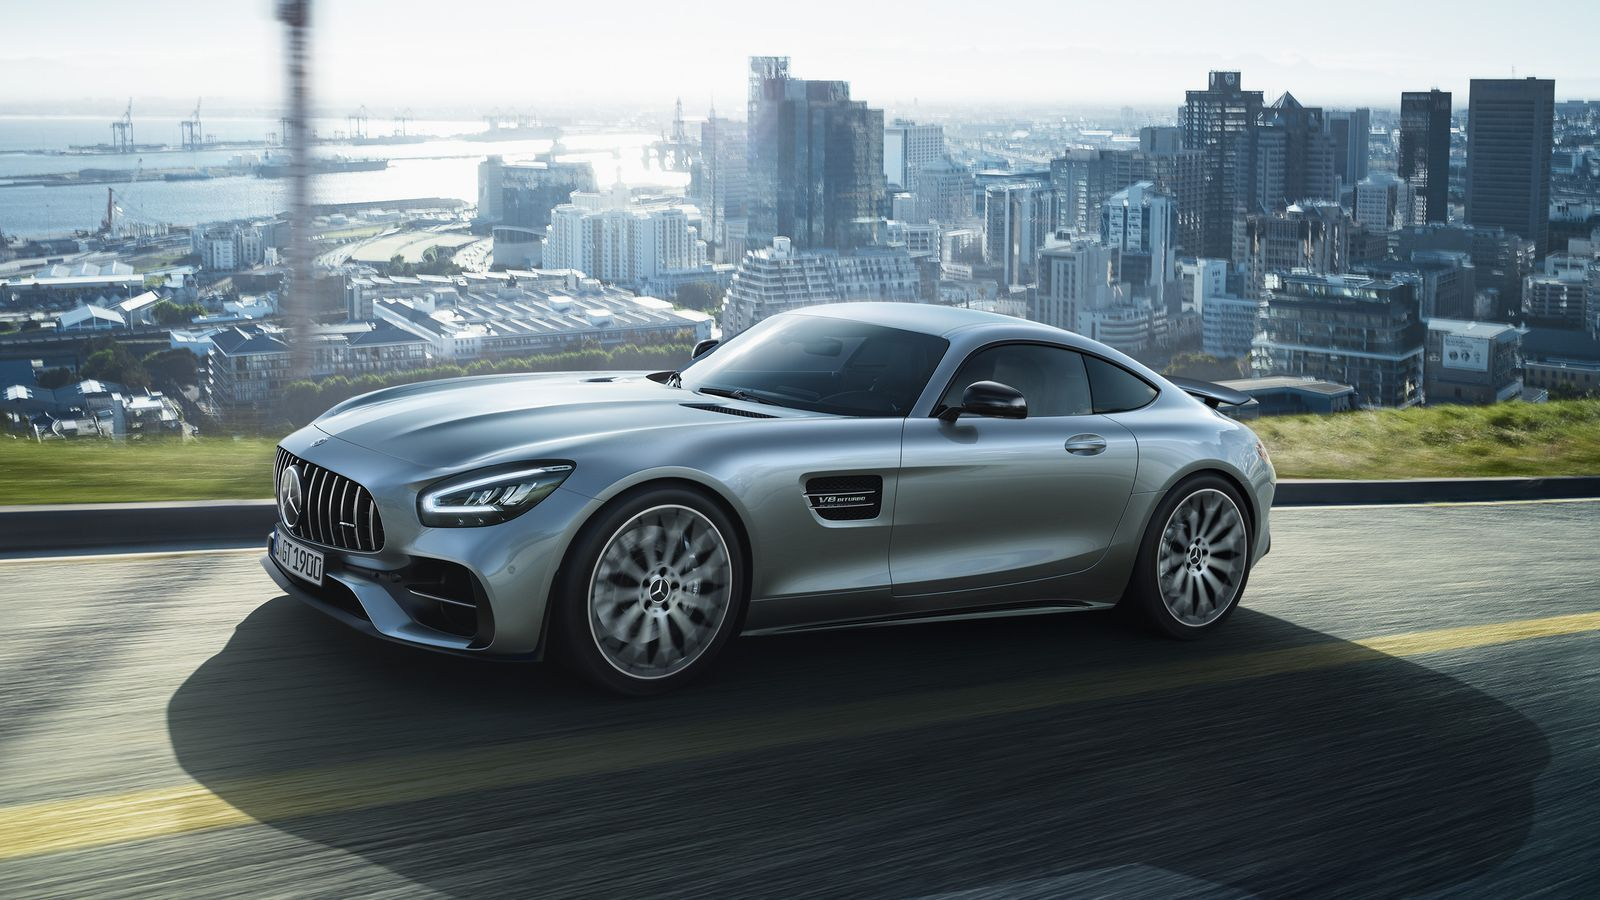 2019 Mercedes AMG GT car in the foreground and a city landscape in the background